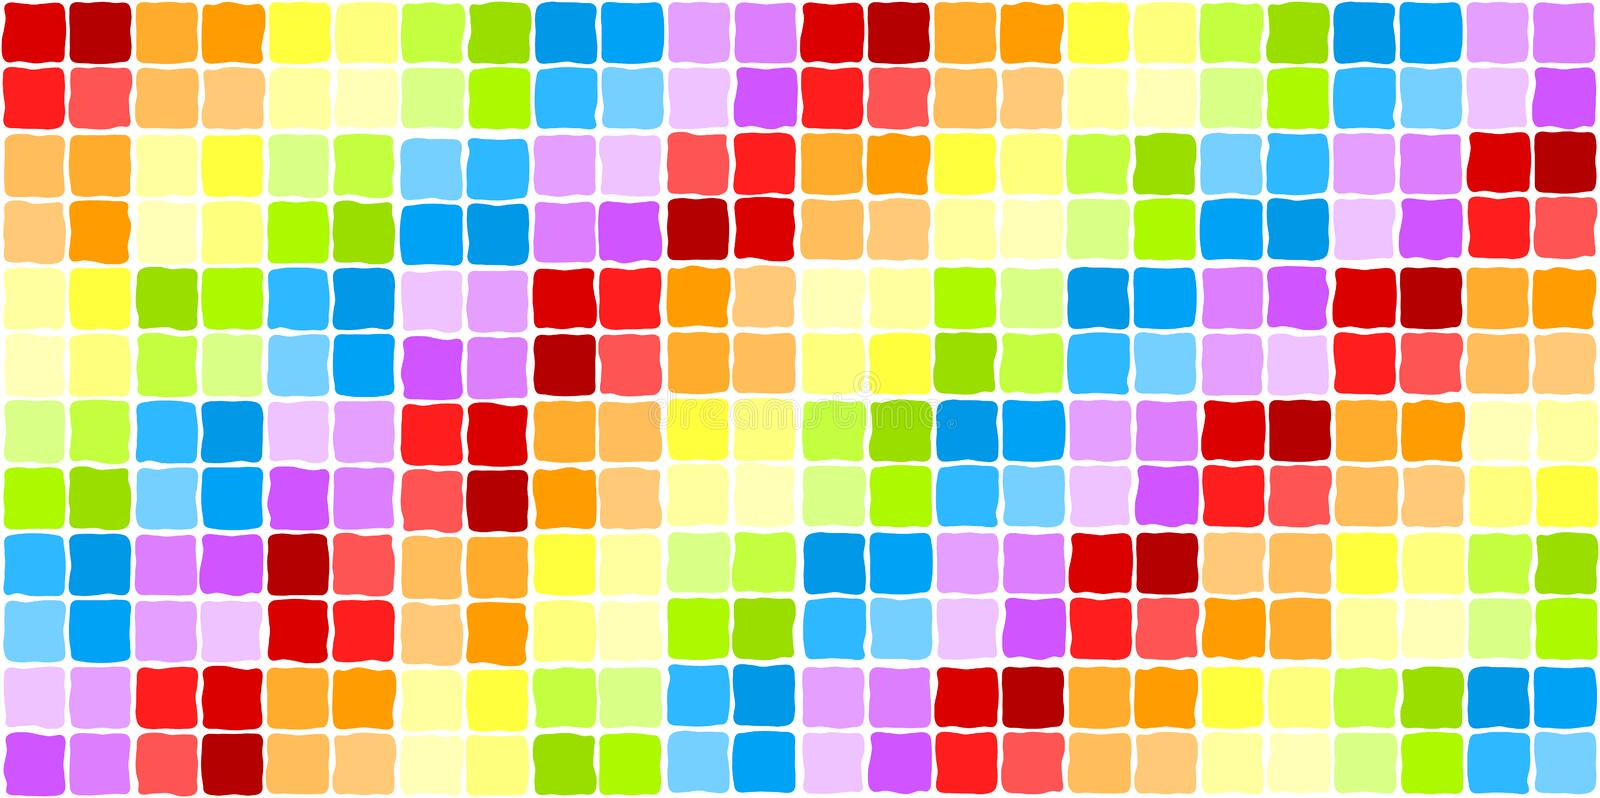 Download Seamless Rainbow Mosaic Tiles Stock Illustration - Image: 24222231